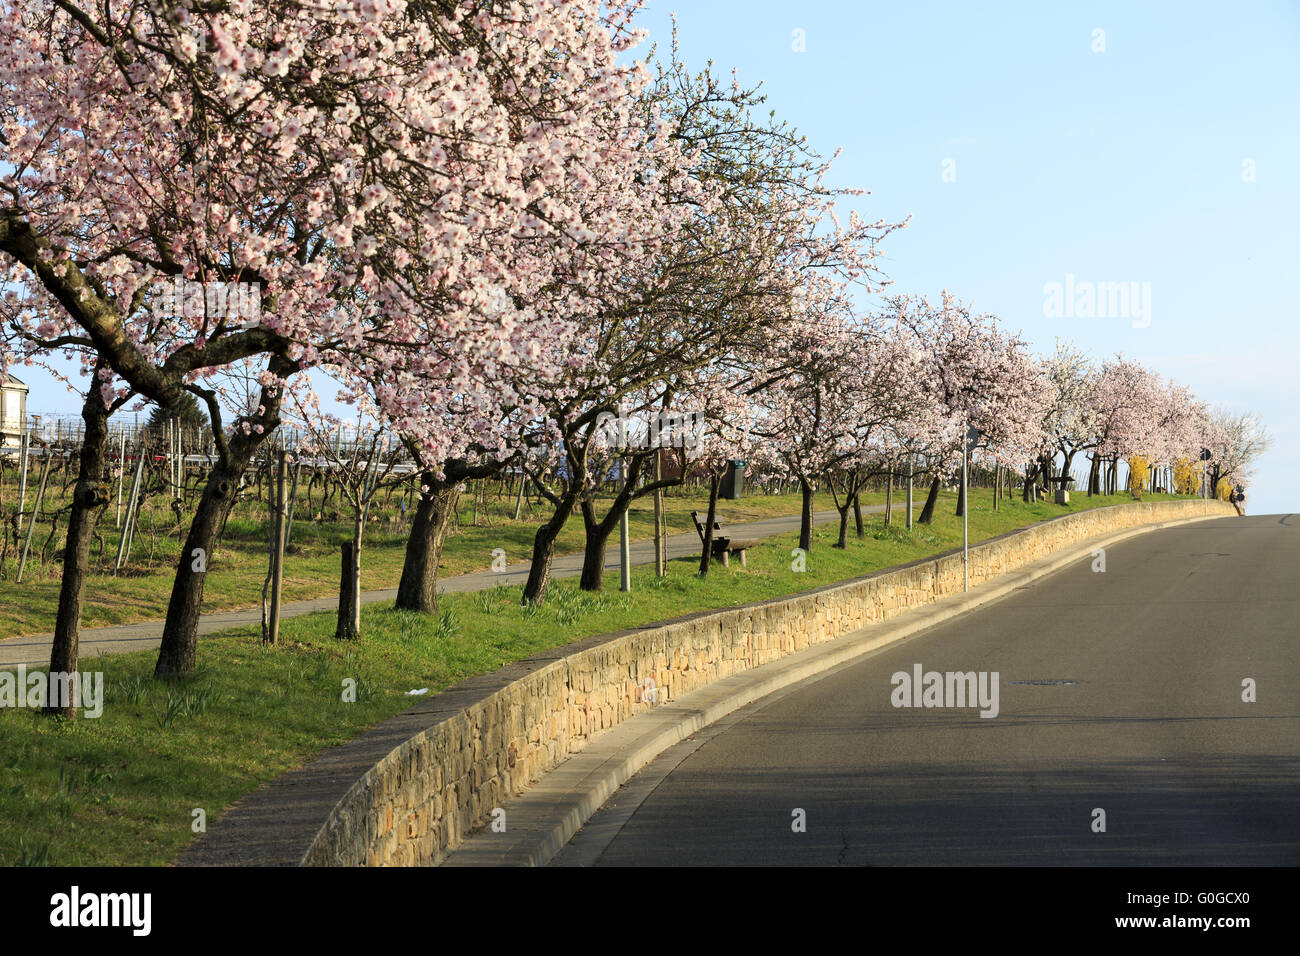 mandelbluete almond tree blooming stock photo 103623576 alamy